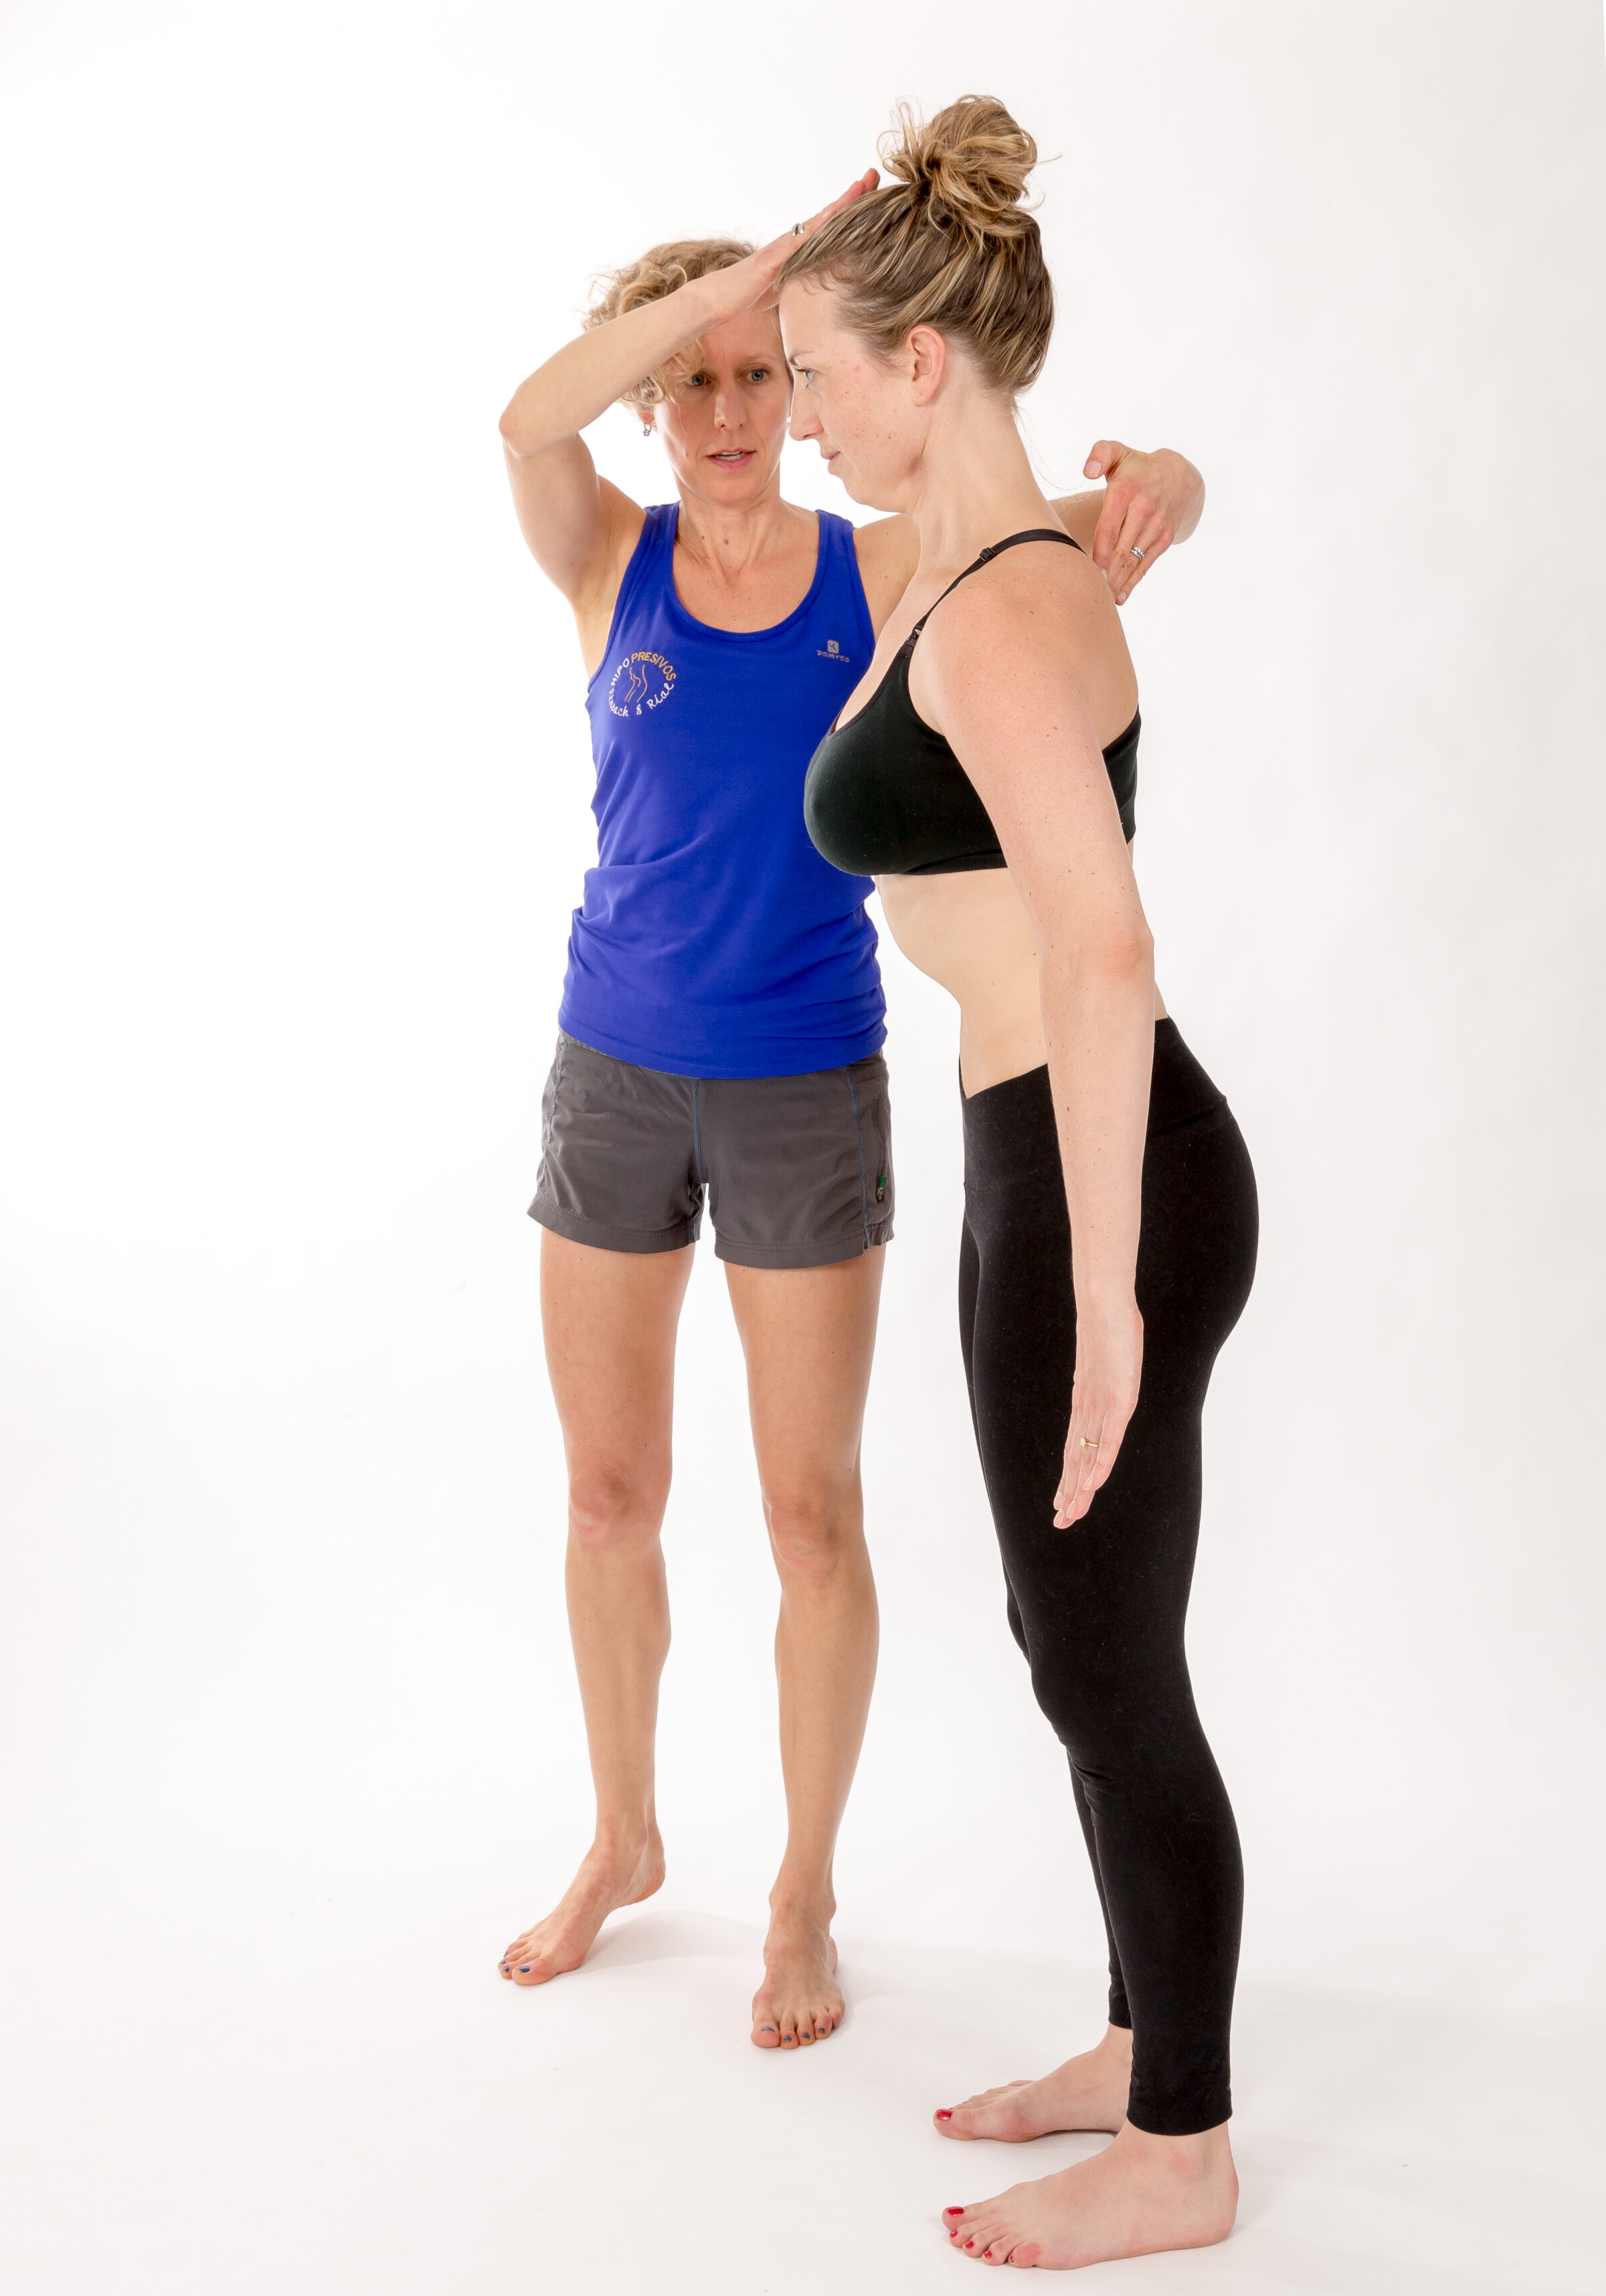 hypopressives, low pressure fitness, core training, pelvic floor health